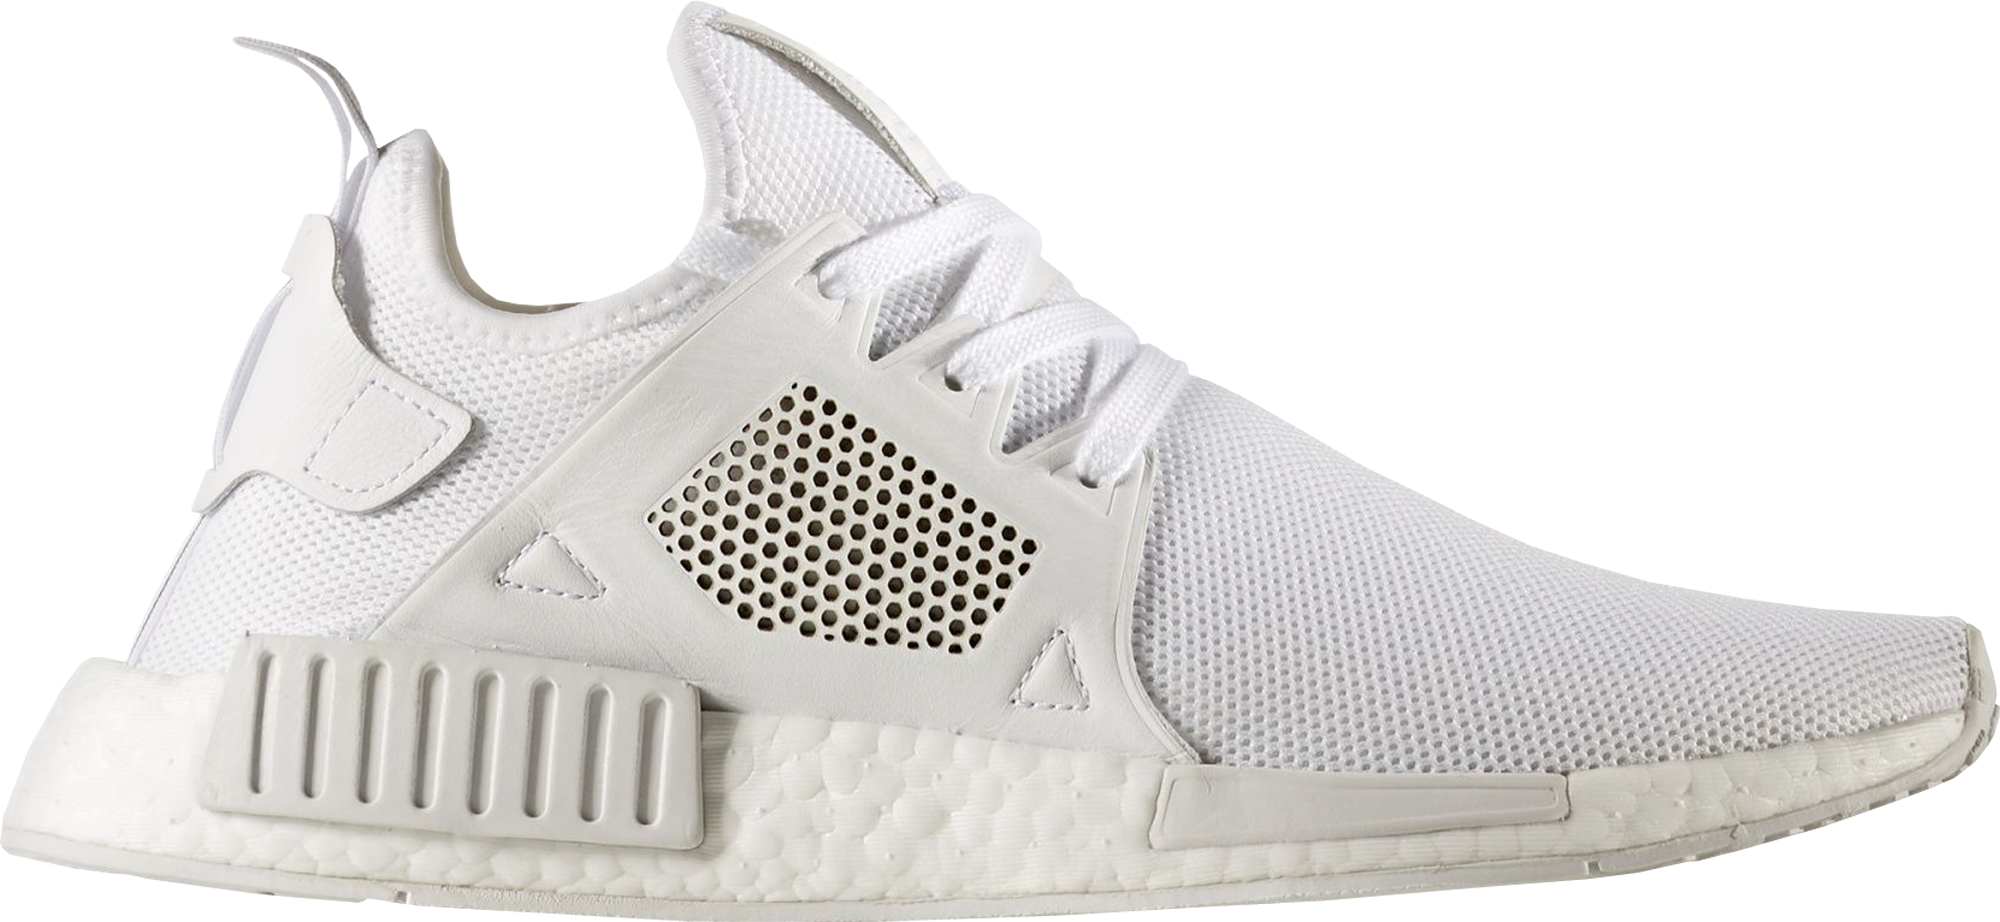 adidas nmd xr1 triple white (2017)